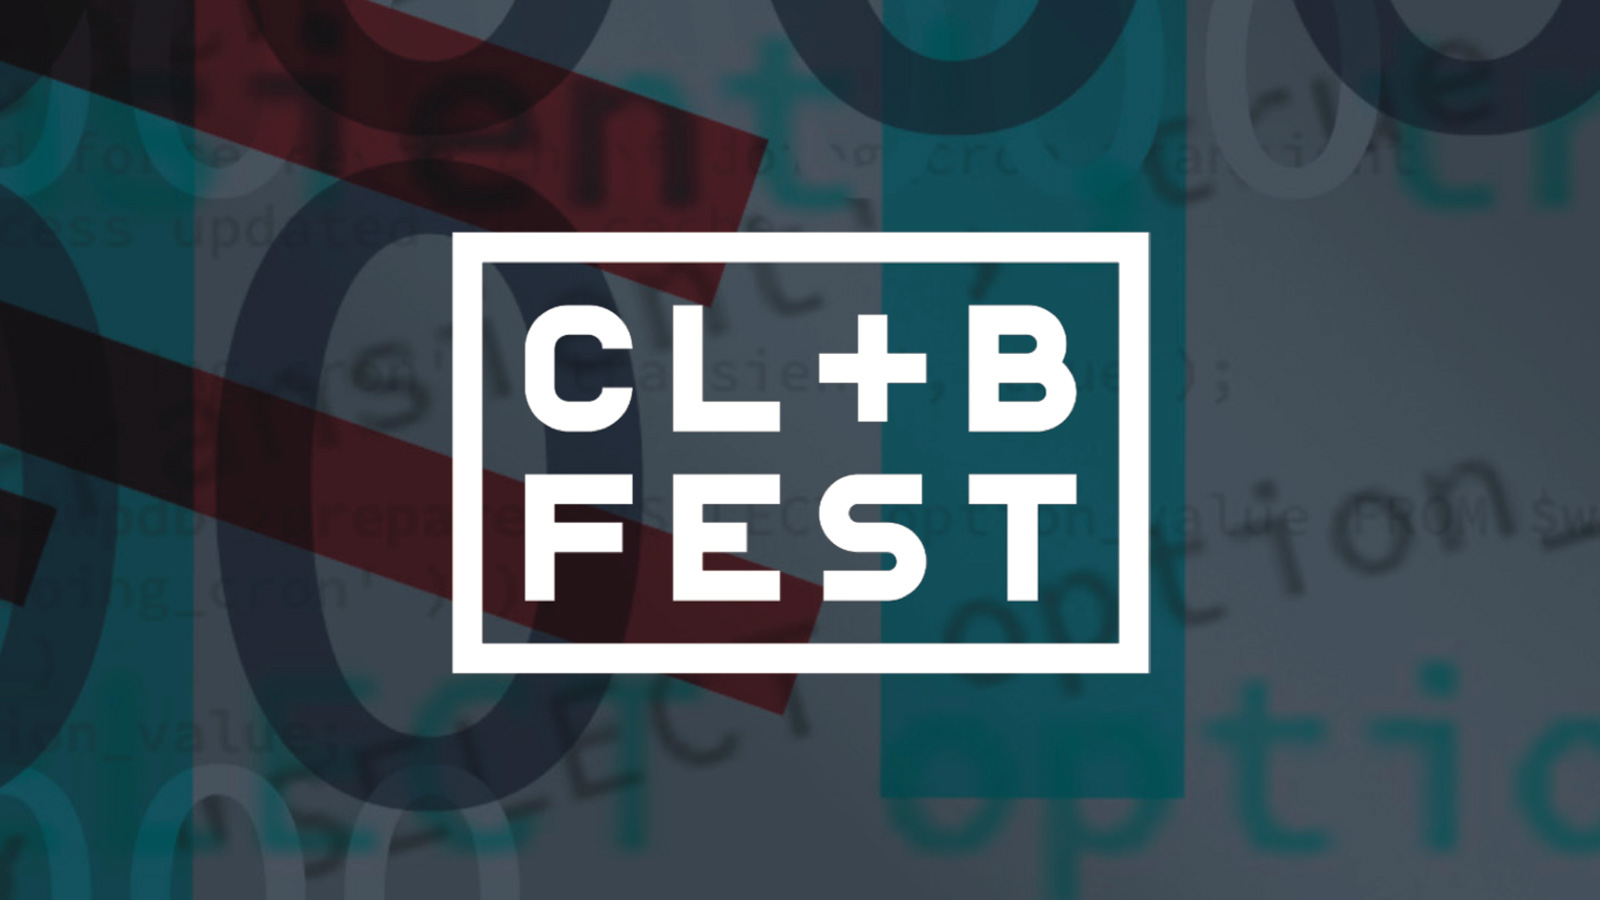 events-clbfest-01-blog.jpg